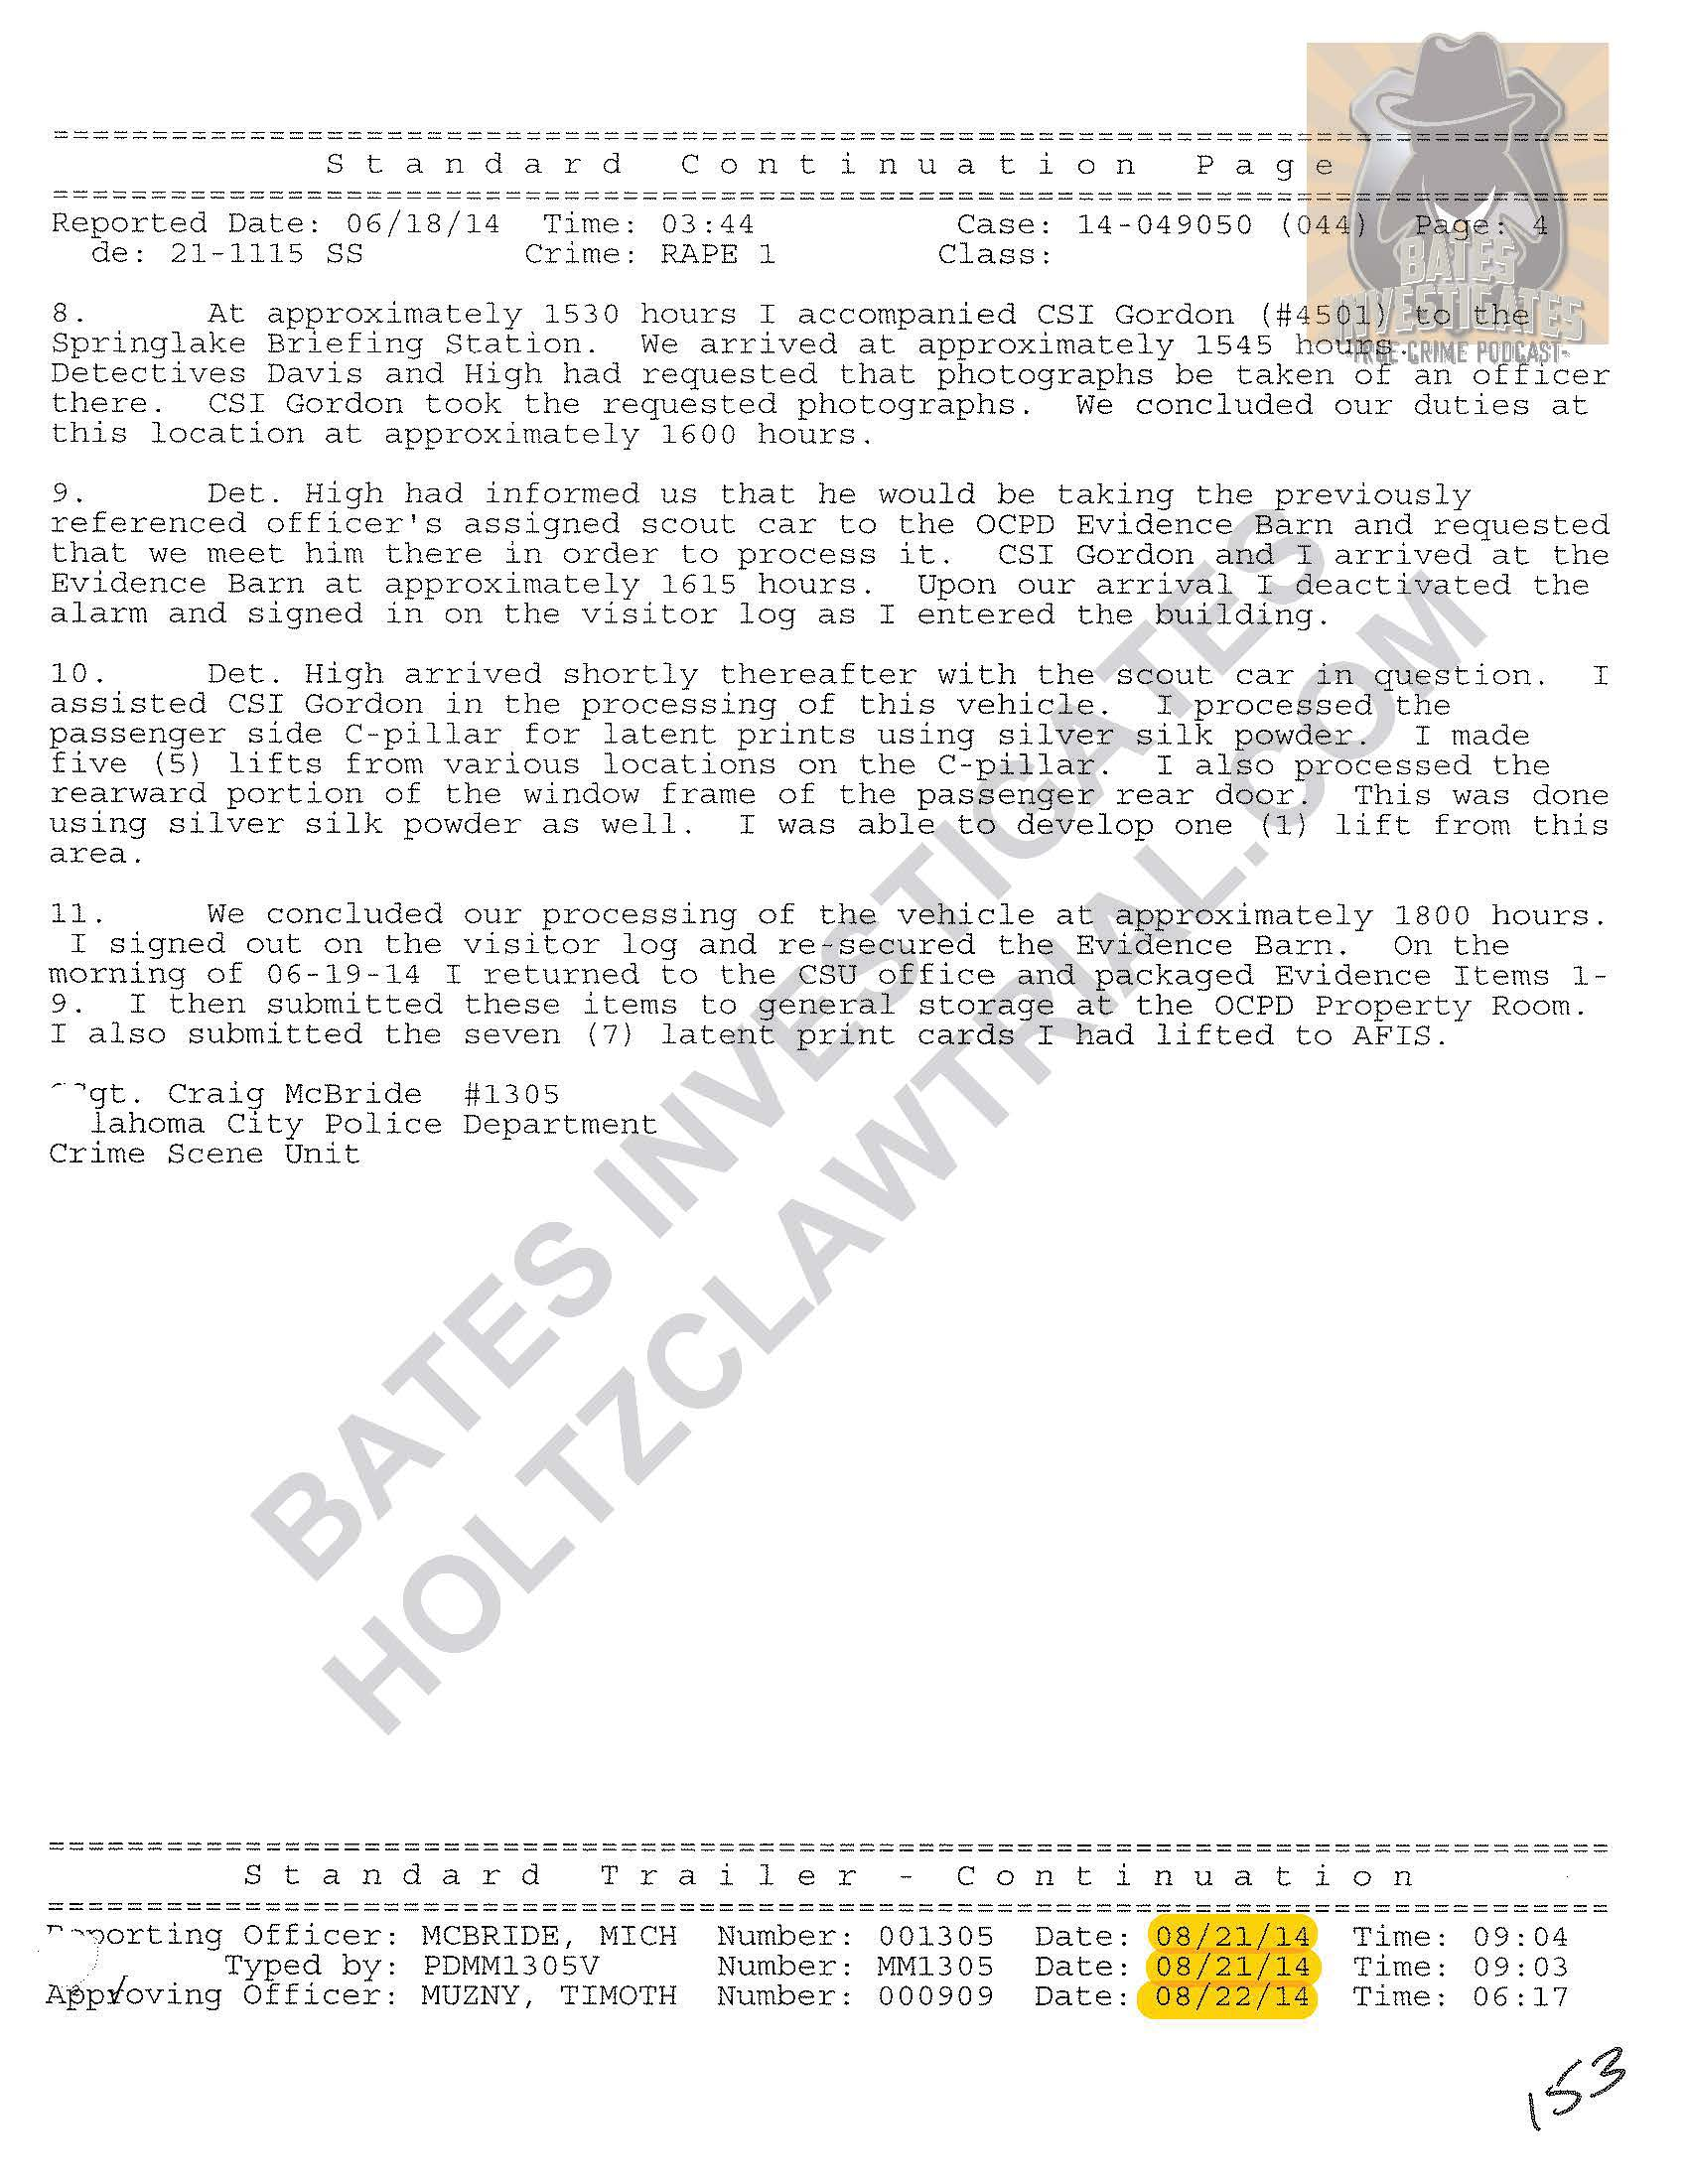 Holtzclaw - Ep02 - Police Reports Watermarked_Page_46.jpg